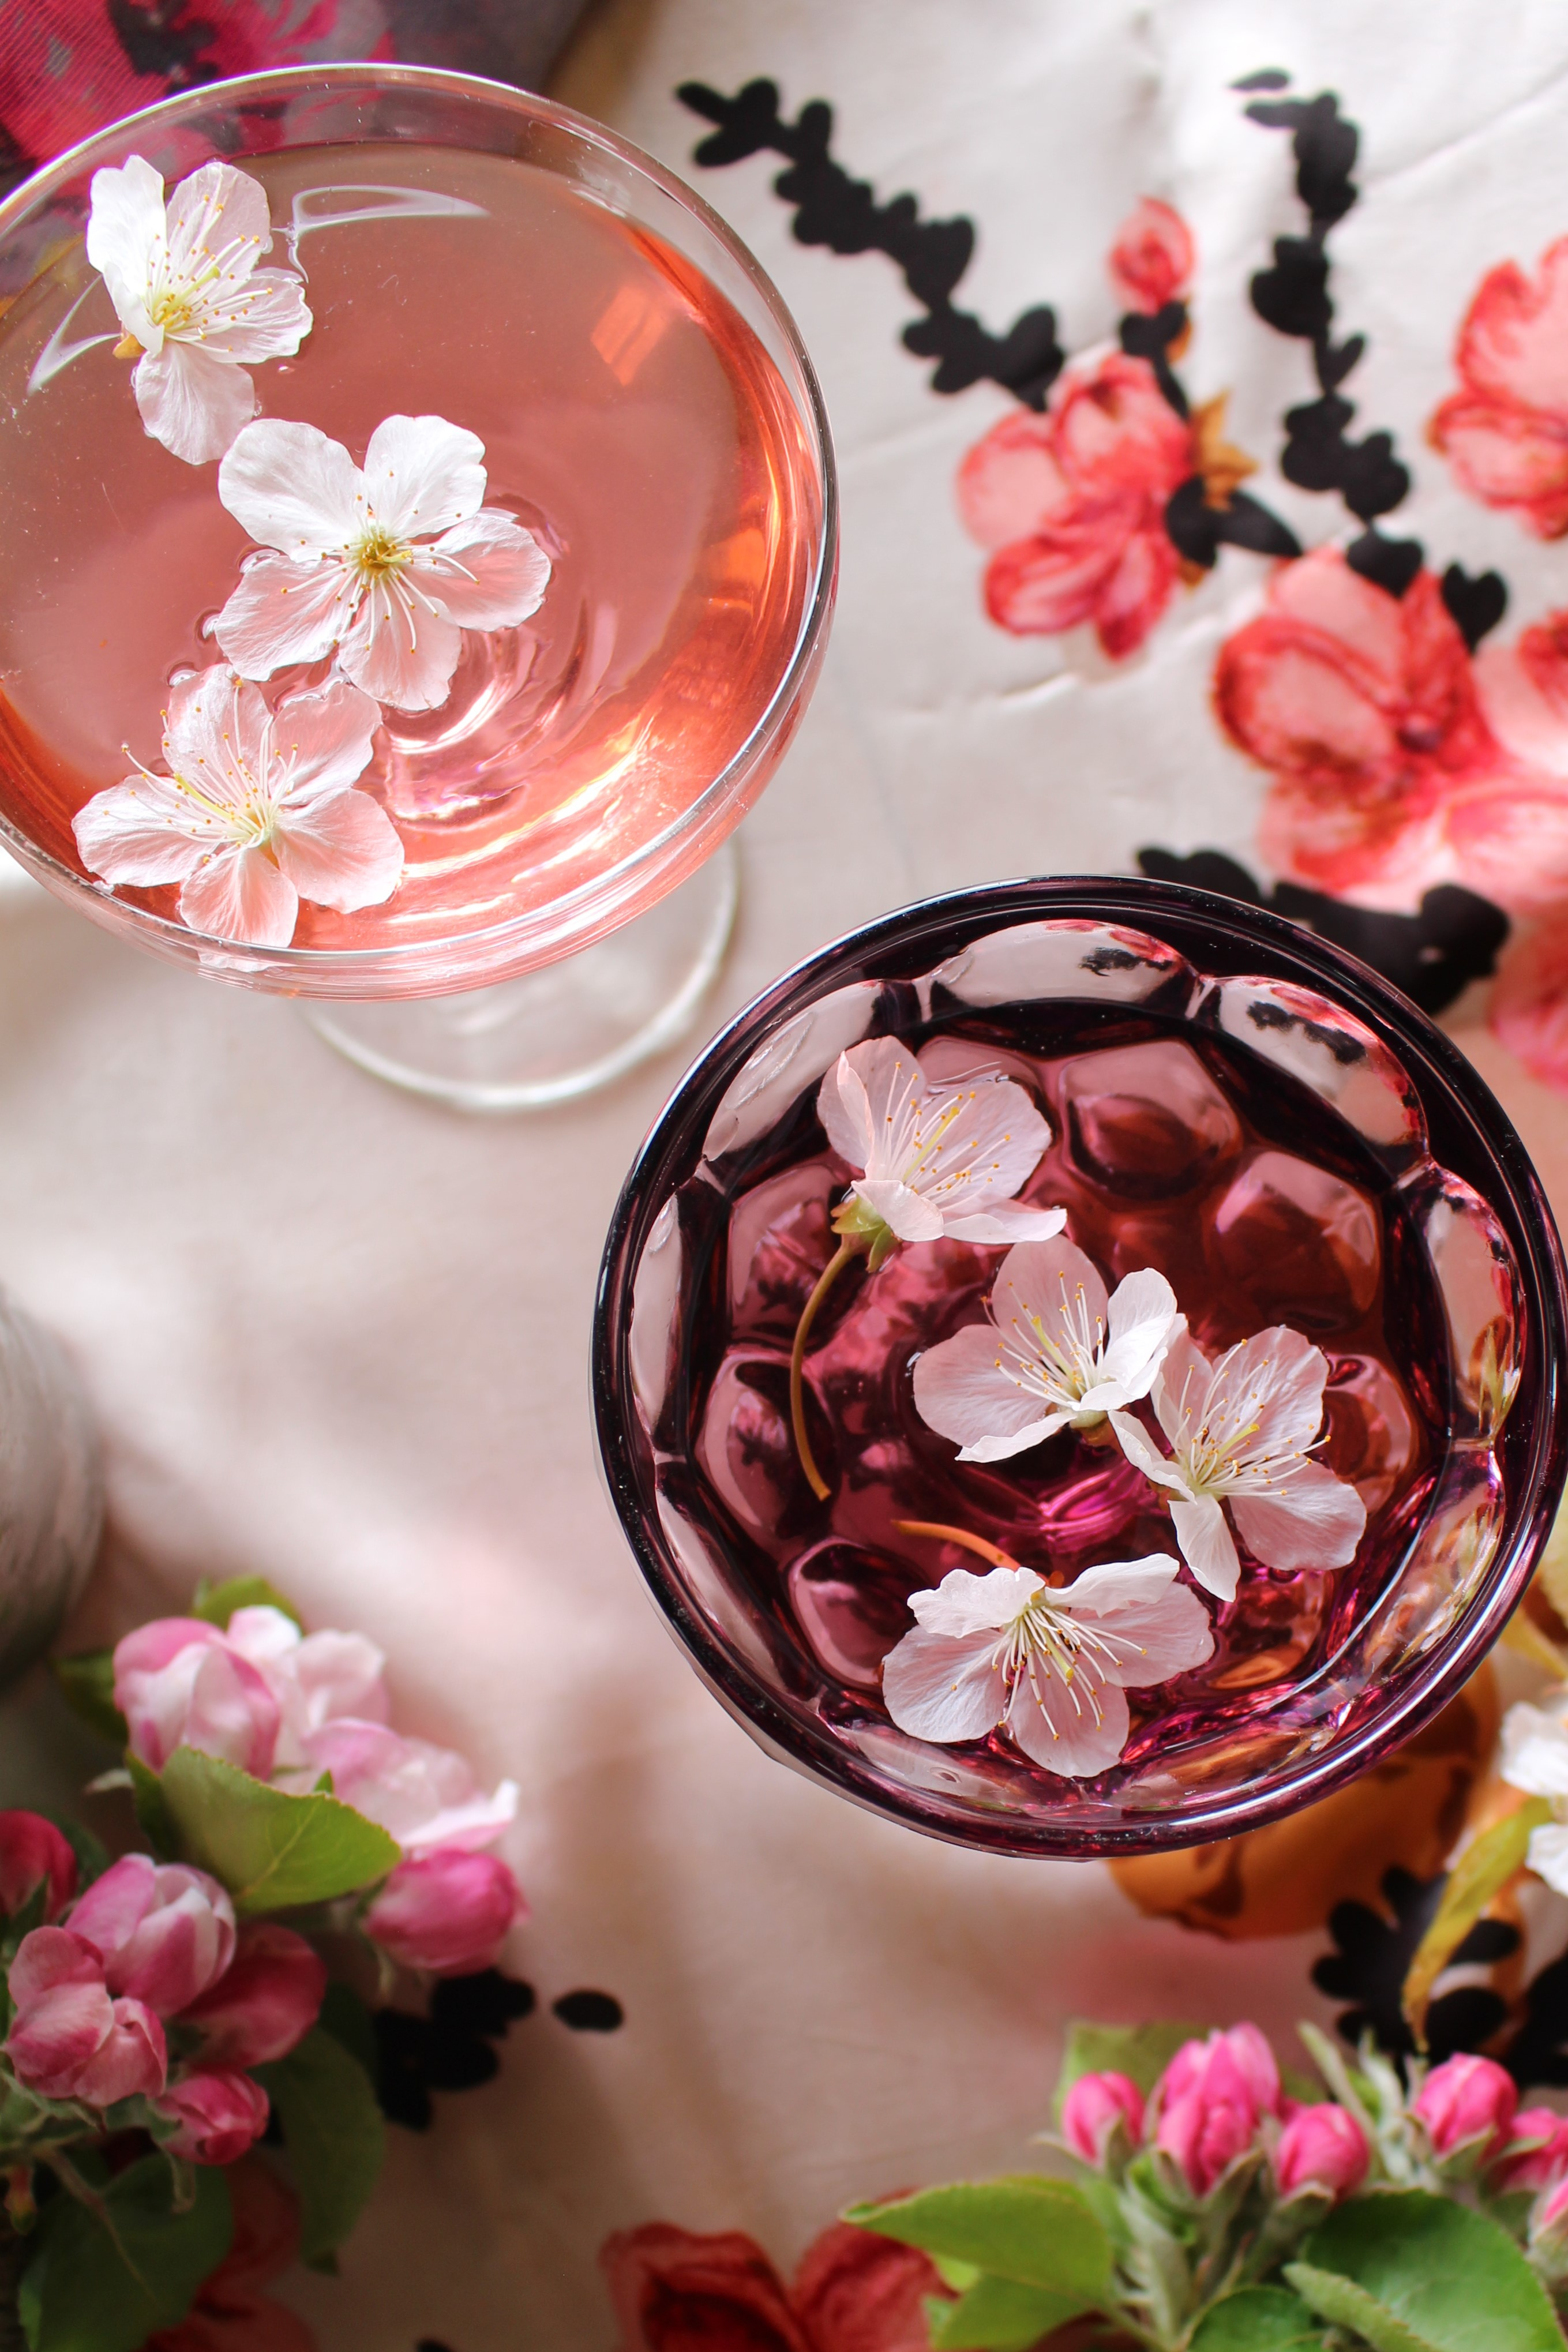 Cherry Blossom Martini using a syrup made from the cherry tree blossom decorated with cherry blossom flowers. Pretty and delicate with a hint of almond.